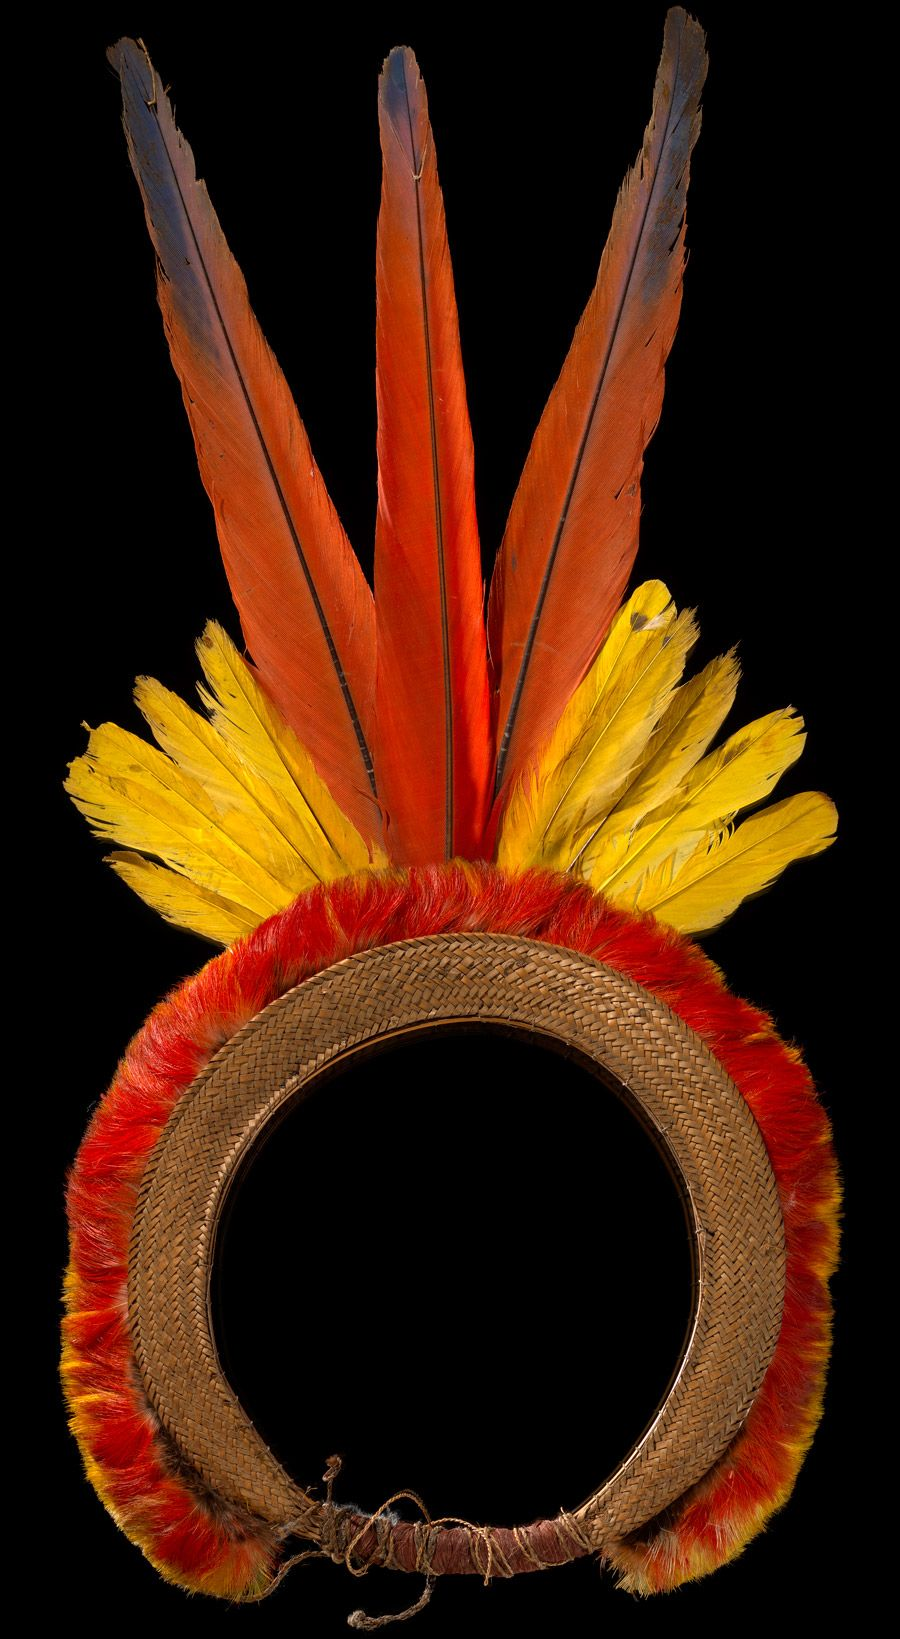 Brazil, State of Amazonas, Rio Uaupés | Tukanoan headring;  Macaw feathers, oropendola feathers, toucan feathers, wood splints, plant fiber  | ca. 1925